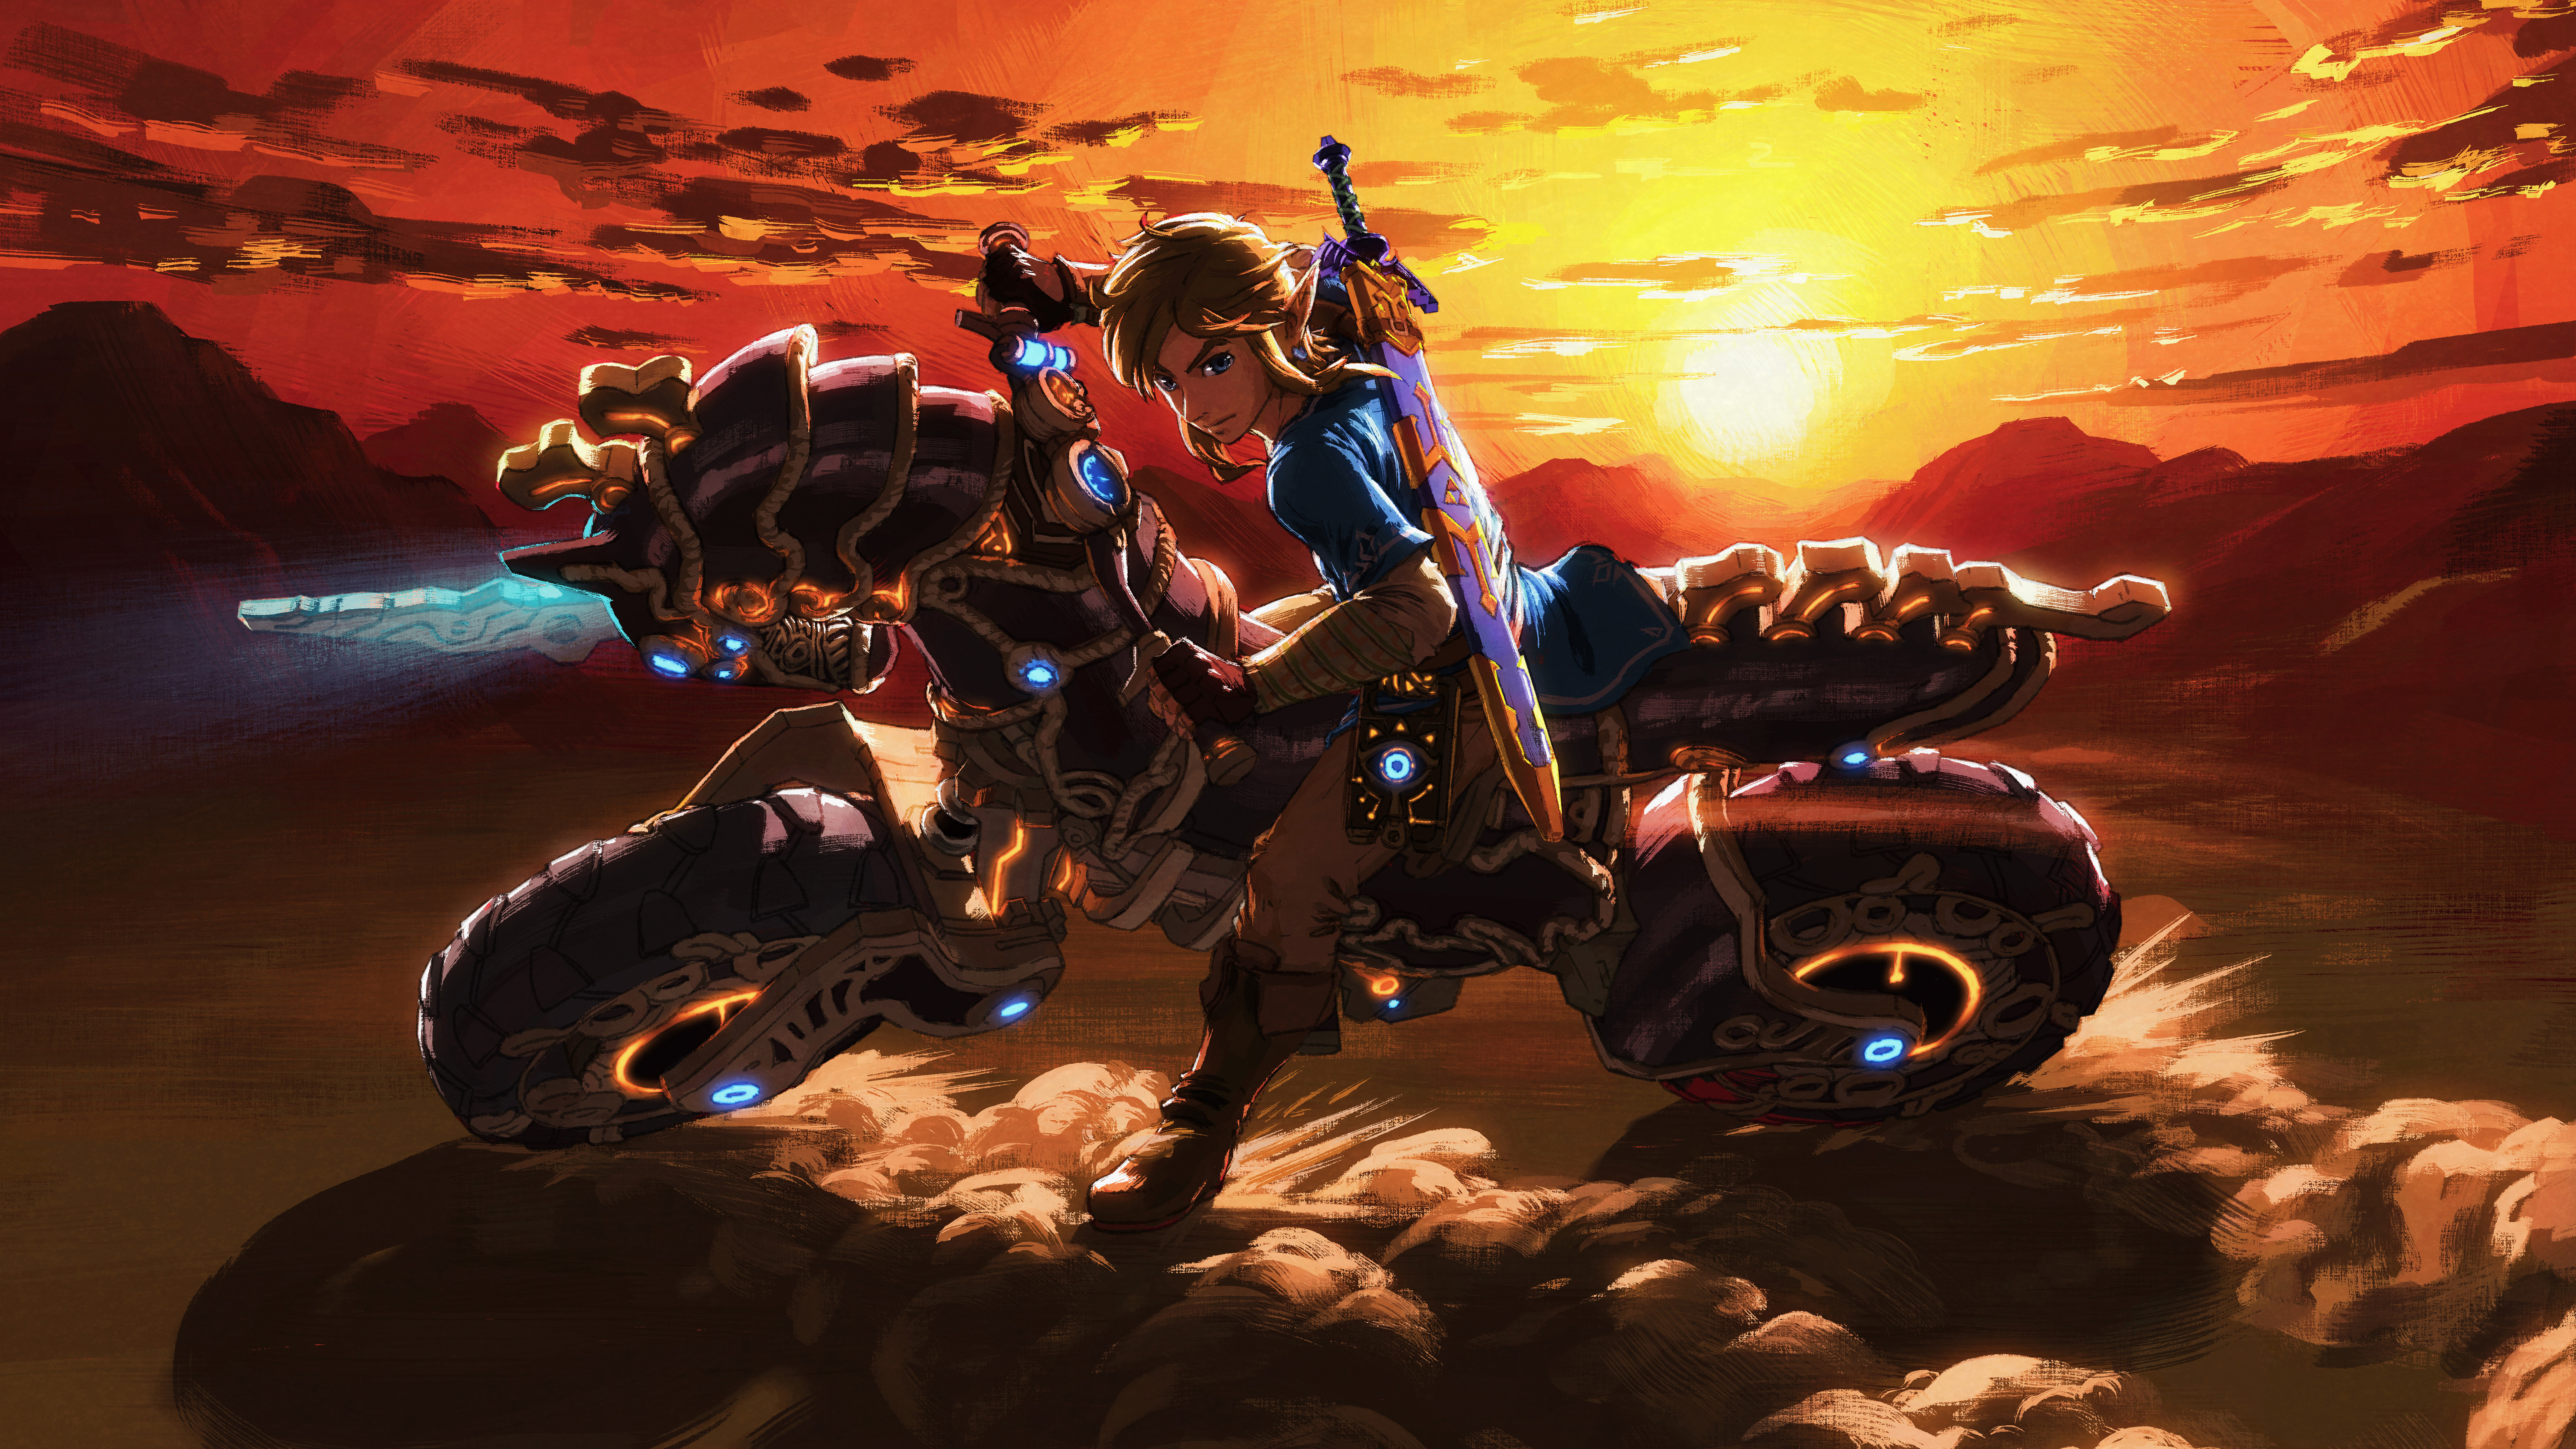 1680x1050 The Master Cycle Zero The Legend Of Zelda Breath Of The Wild 1680x1050 Resolution Wallpaper Hd Games 4k Wallpapers Images Photos And Background